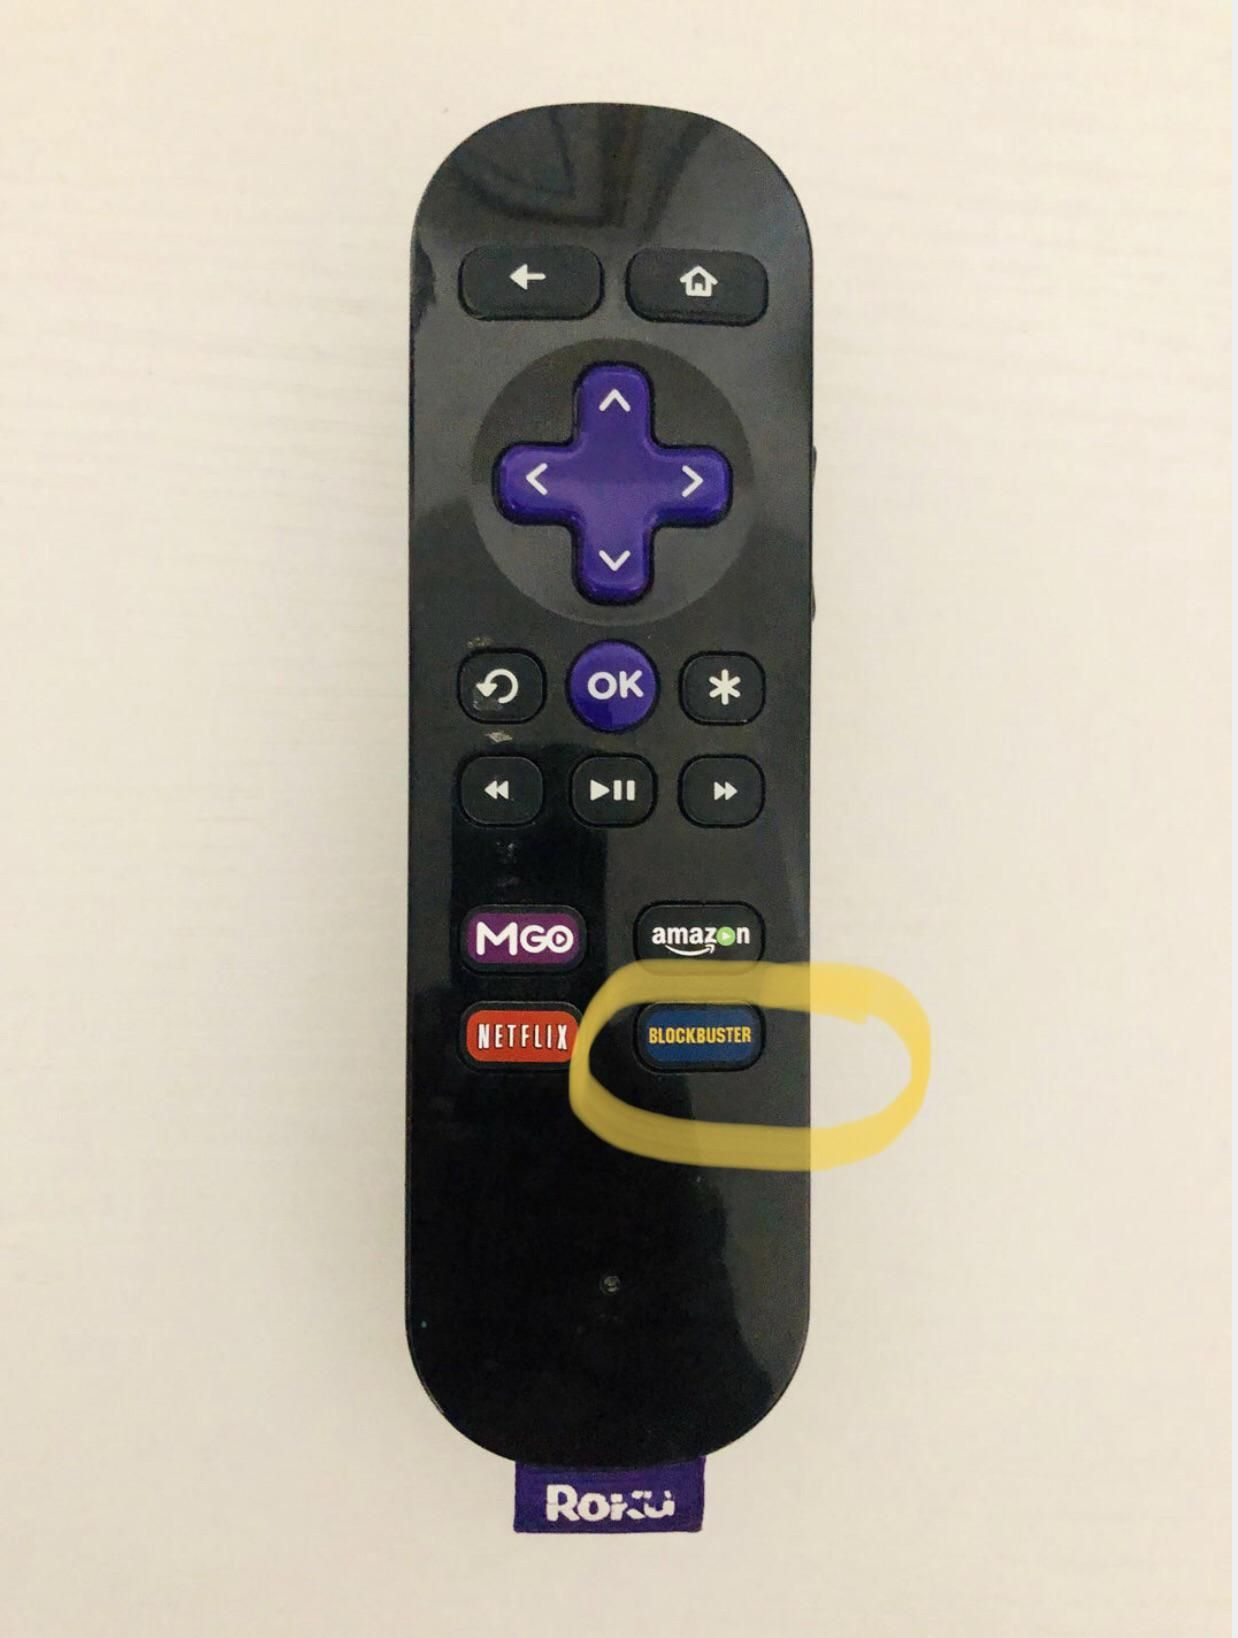 My ROKU is really old